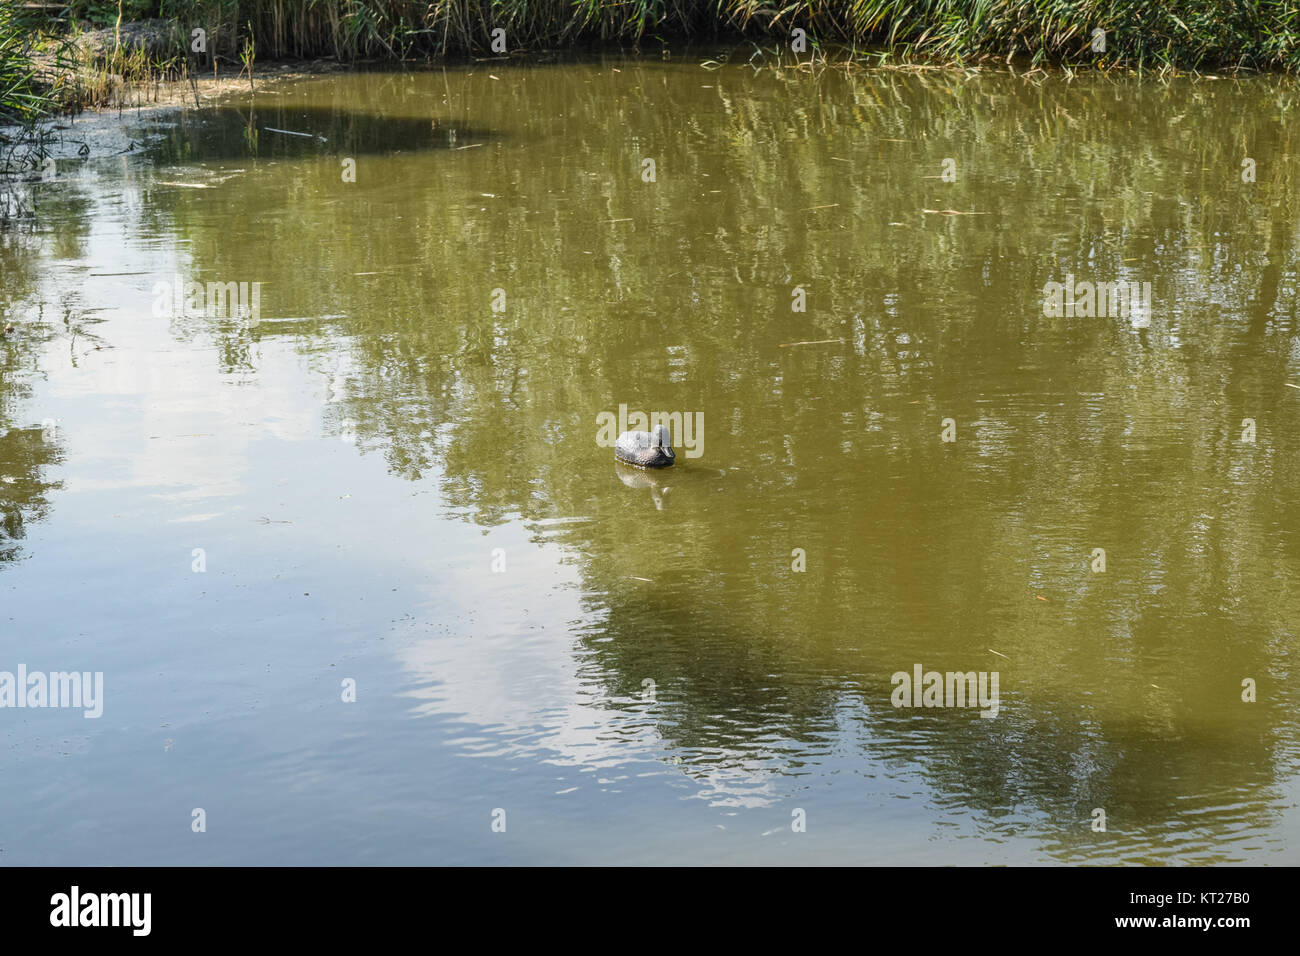 Pond with ducks artificial. Plastic dummies ducks in the pond - Stock Image